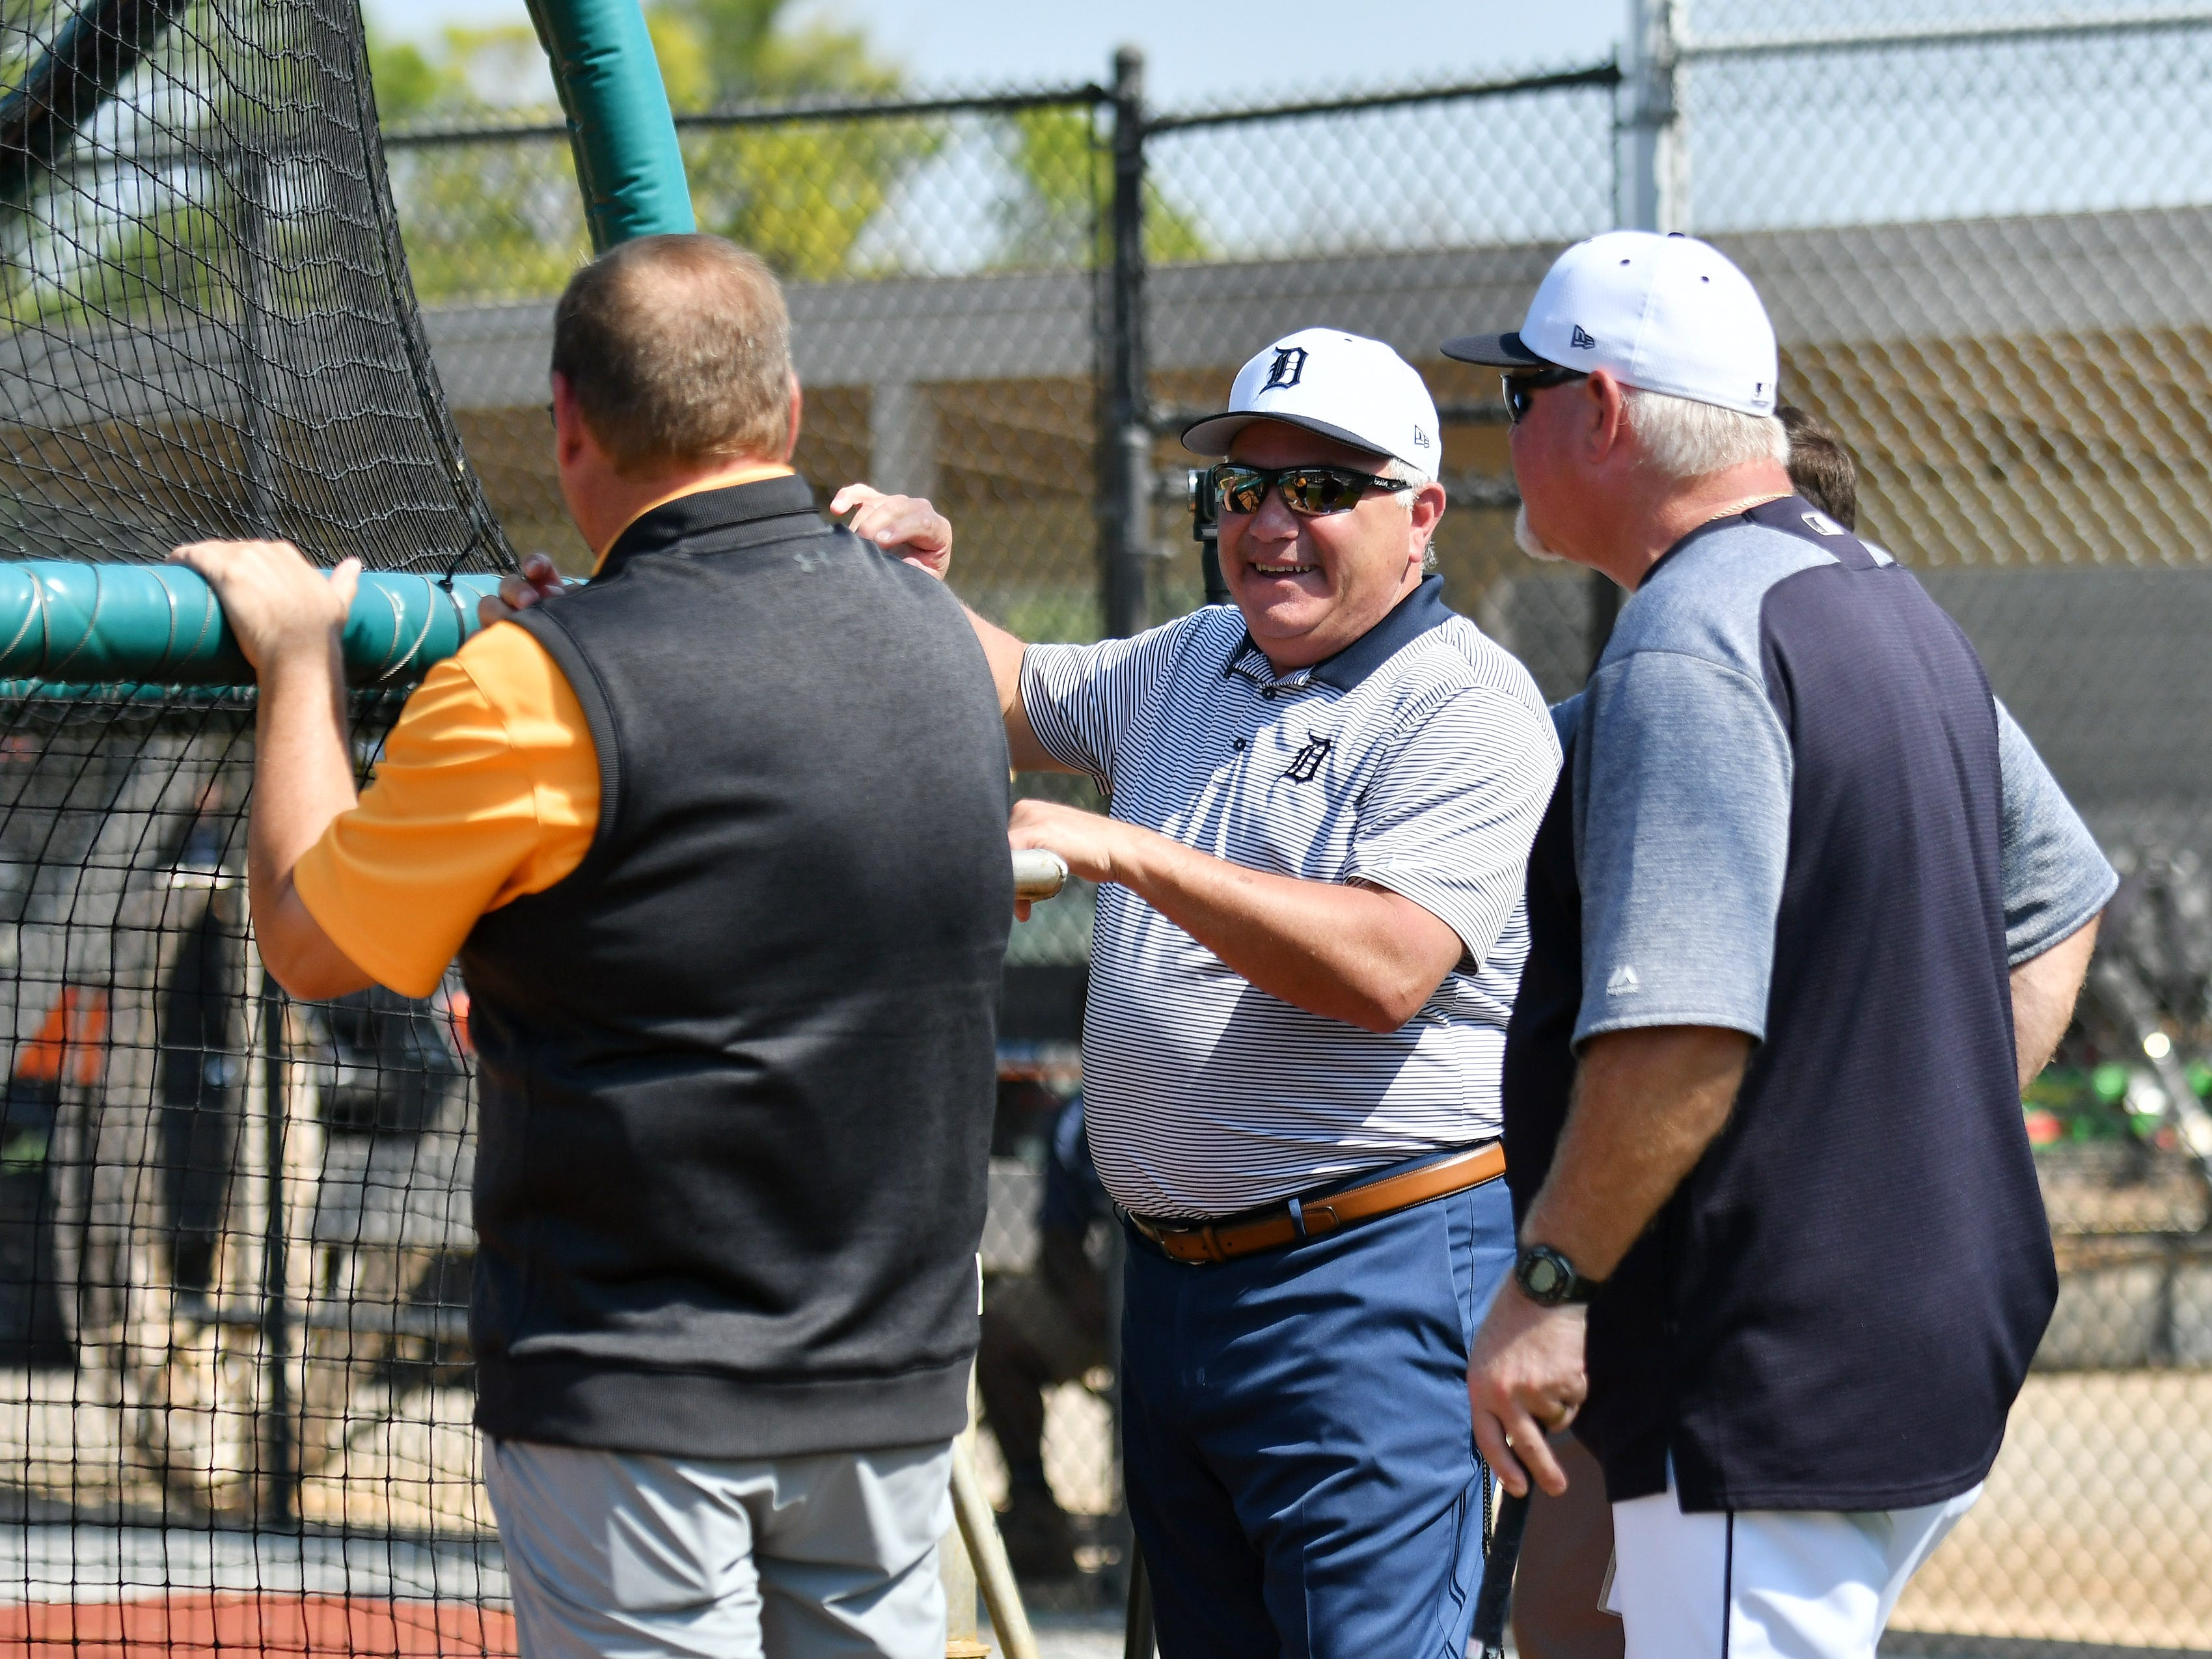 Tigers executive vice president of baseball operations and general manager, center, talks with manager Ron Gardenhire, right, and vice president, assistant general manager David Chadd talk during batting practice.